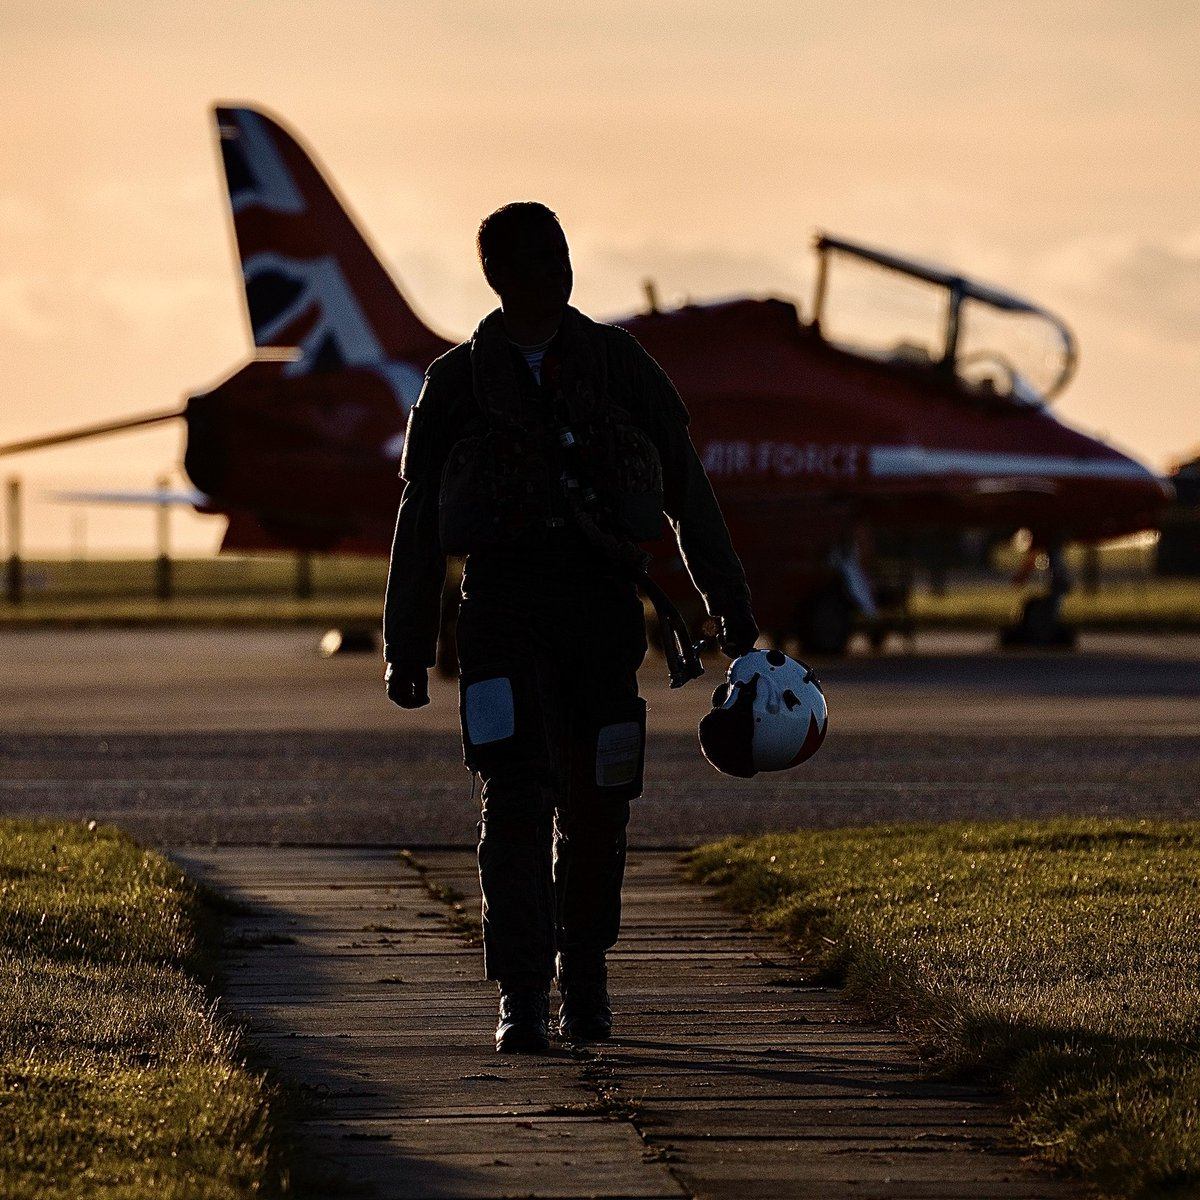 Winter training has started (with gusto 👊🏻😂). Making the most of this crisp winter weather, here at @rafredarrows HQ, RAF Scampton. 📷=SAC Rose Buchanan. https://t.co/mqiUUvIxsI